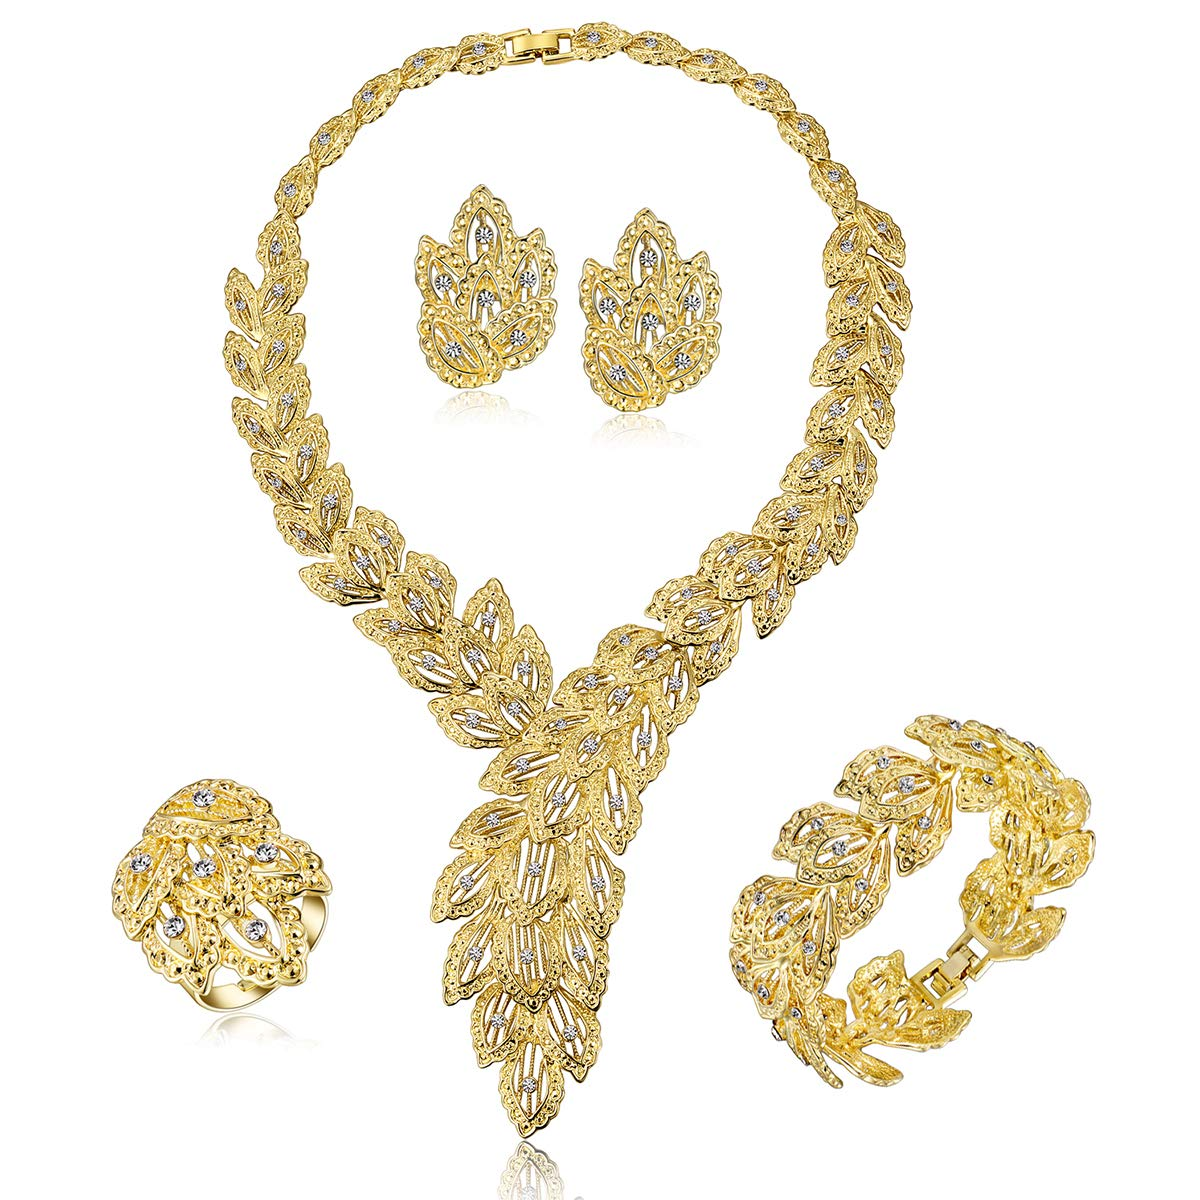 Moochi 18K Gold Plated Scarf-Shaped Crystal Chain Necklace Ring Jewelry Set